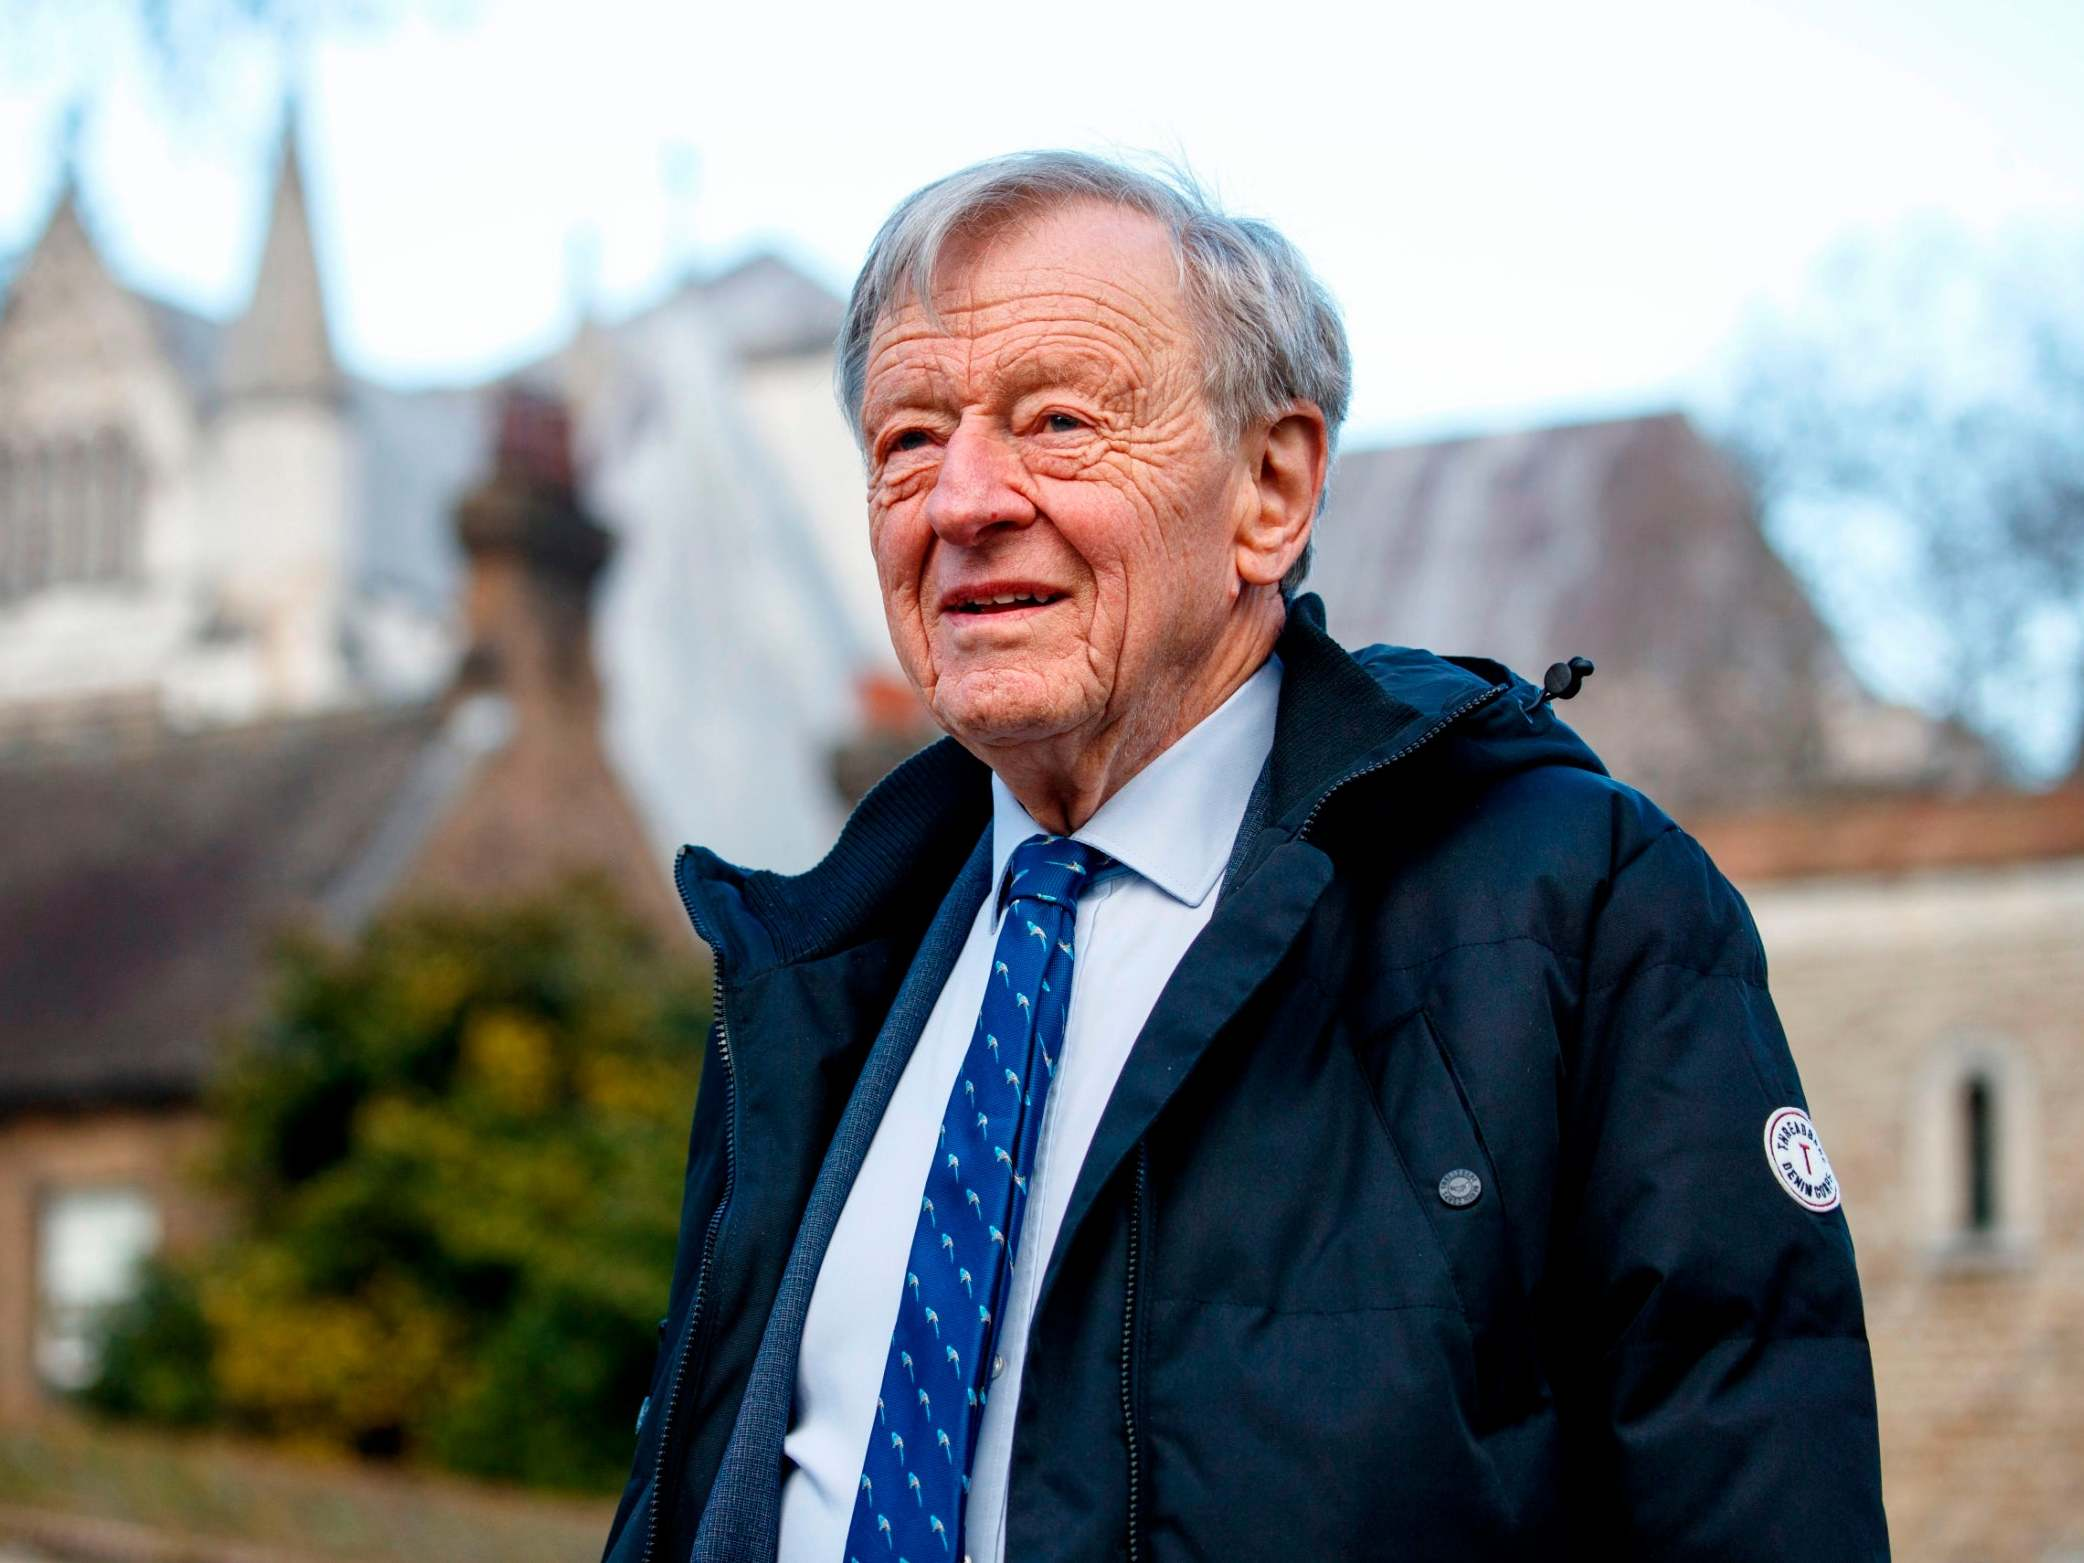 Lord Dubs: The similarities between the UK today and 1930s Europe are chilling